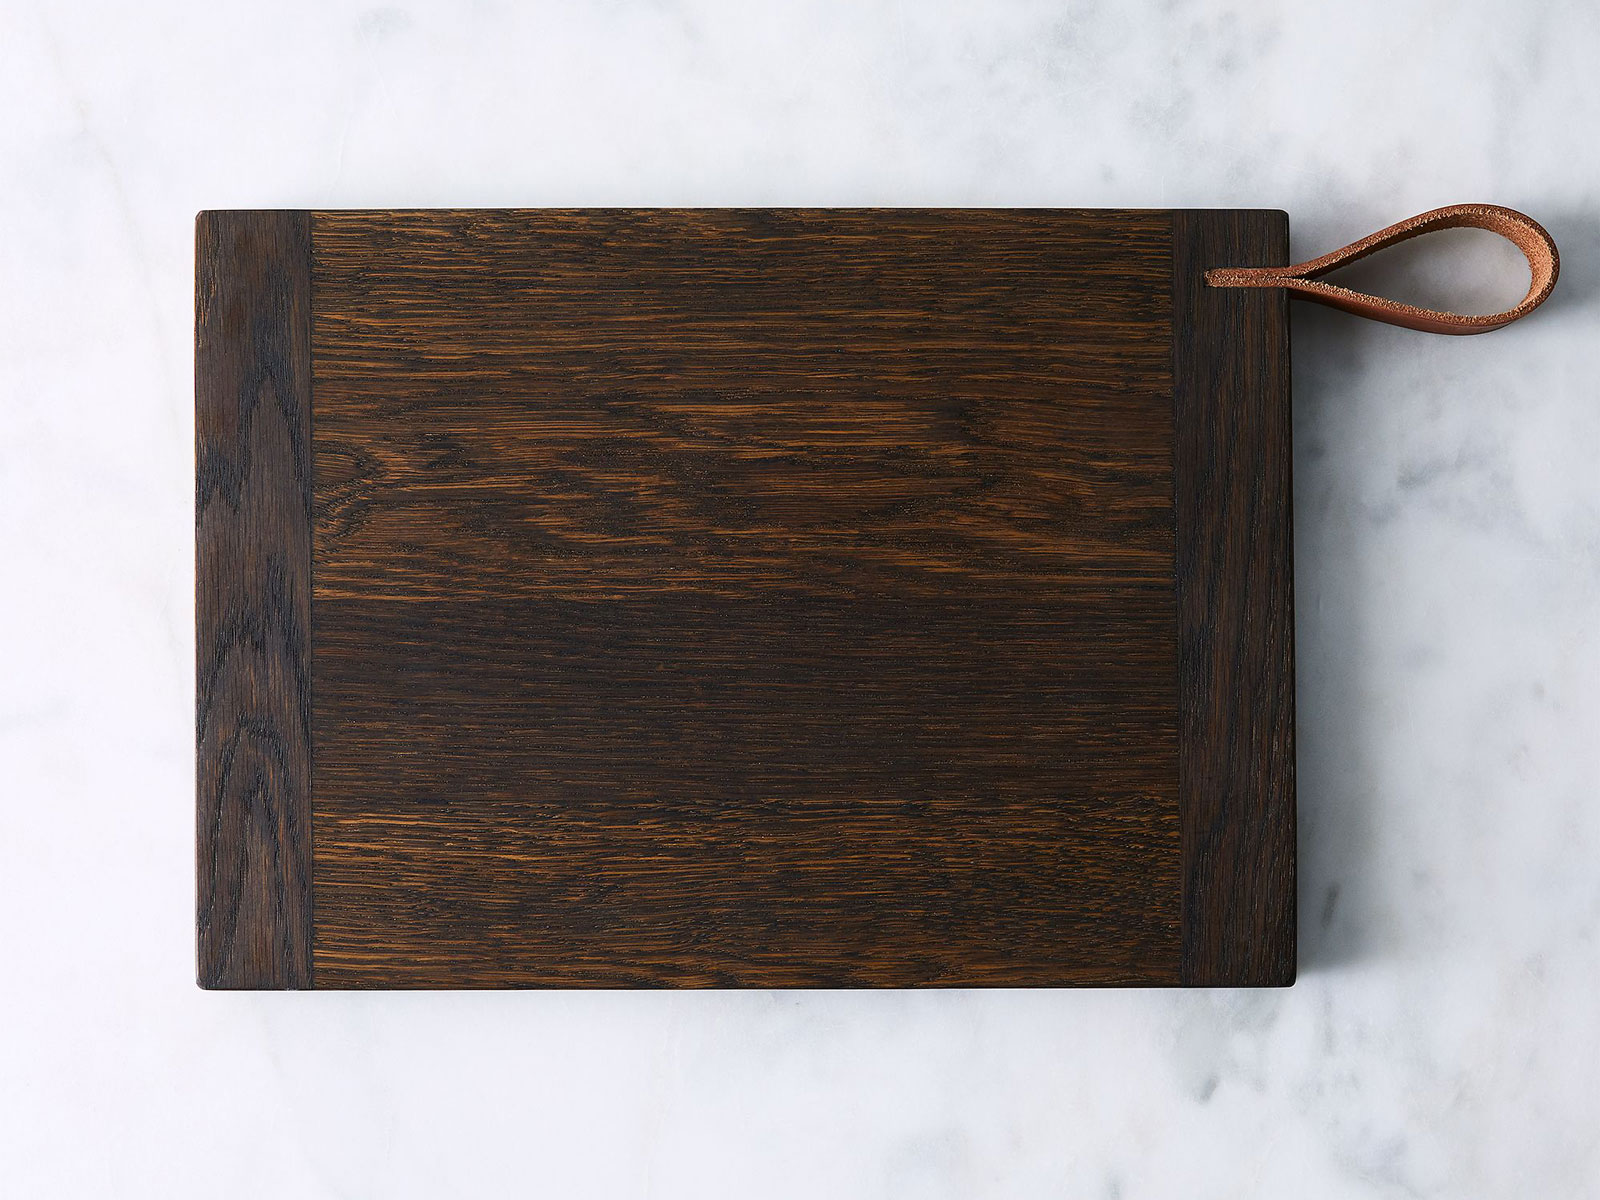 Oak Cutting Board with Leather Strap